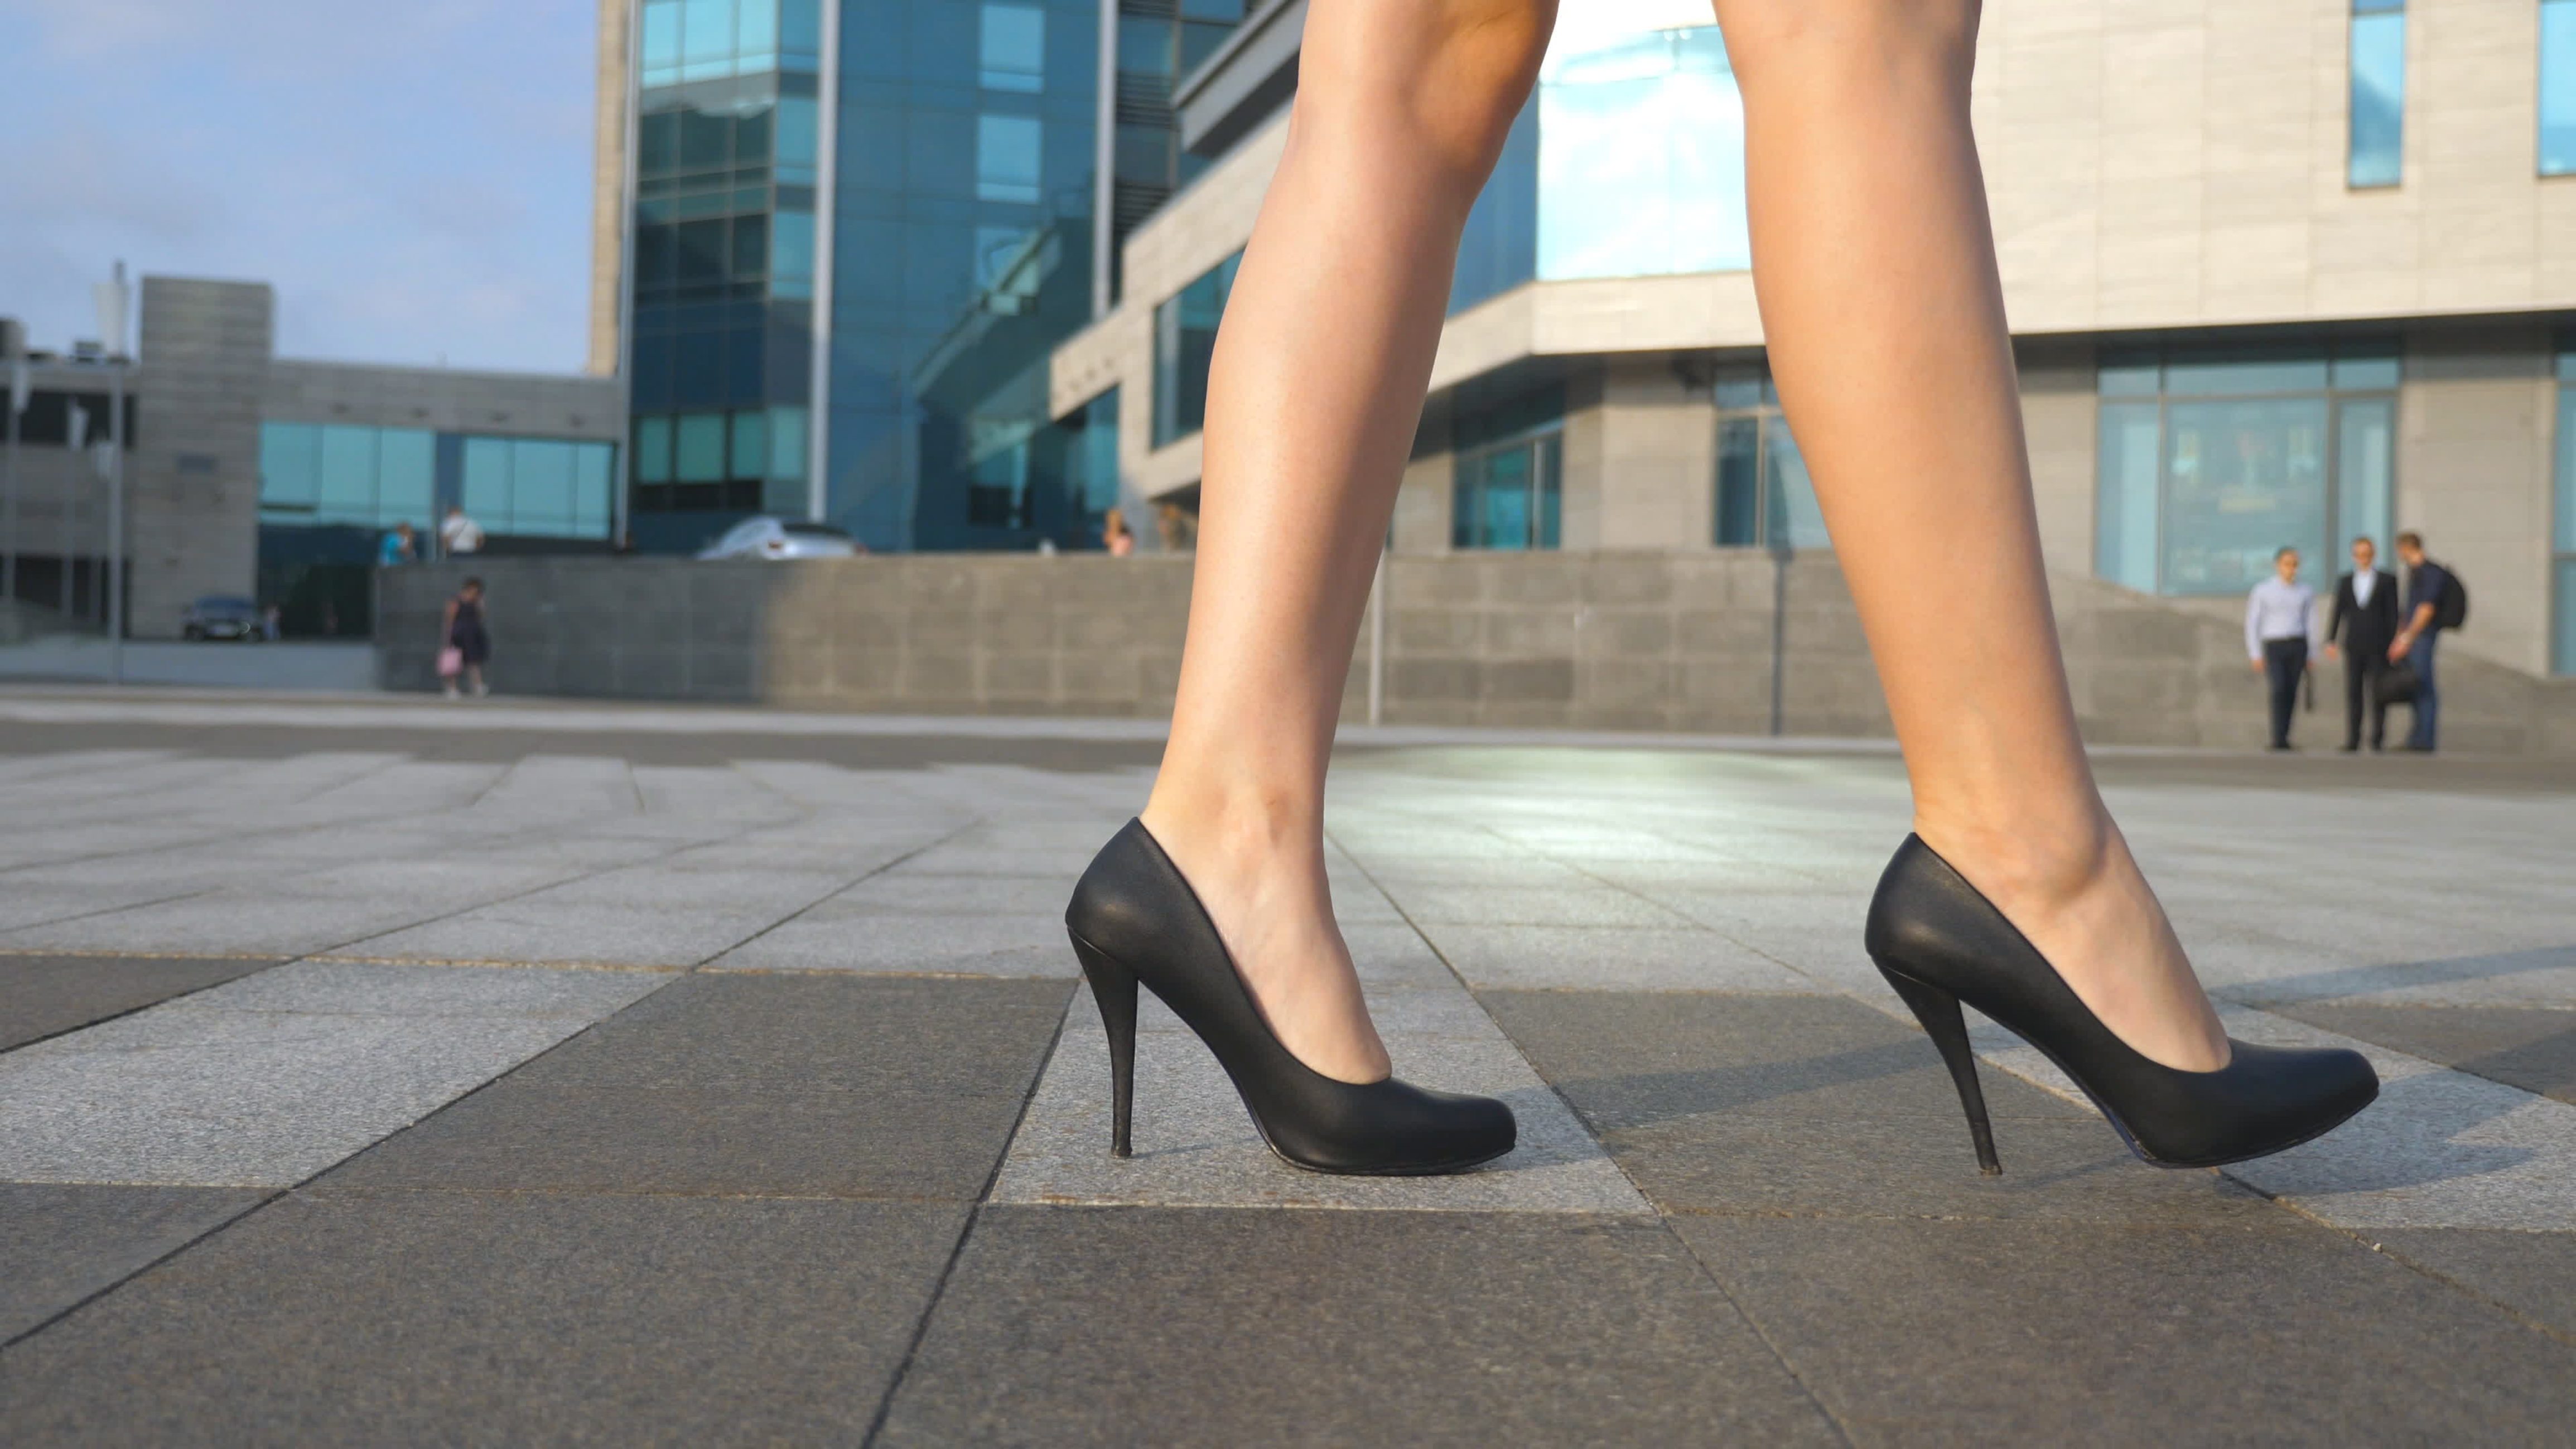 Female legs in high heels shoes walking in the urban street. Feet of young business woman in high-heeled footwear going in the city. Girl stepping to work. Slow motion Close up.